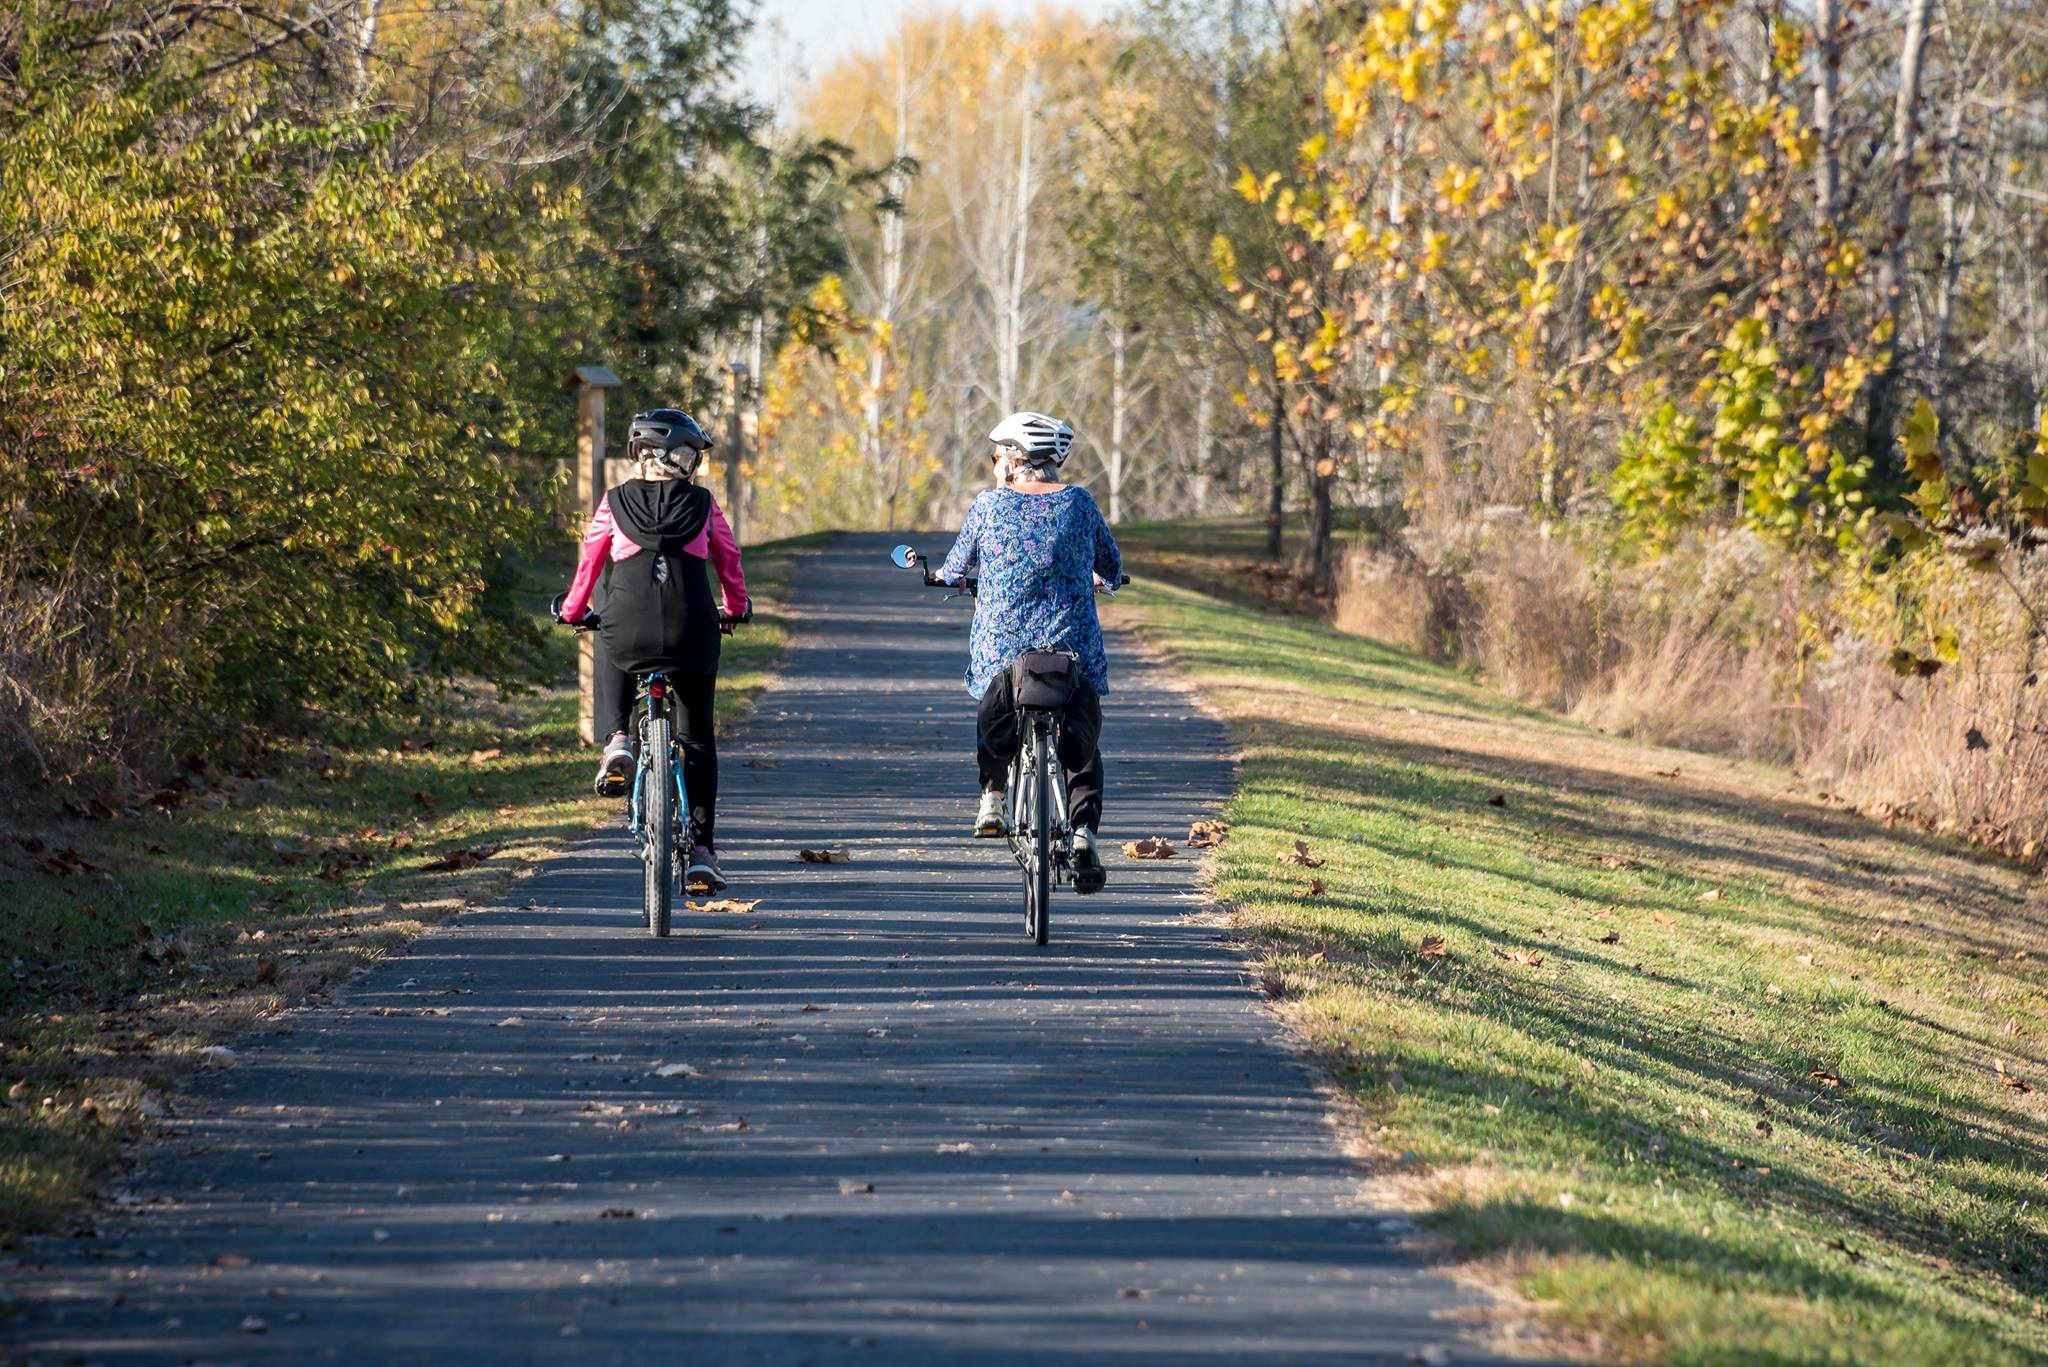 Two Cyclists on the Greenway